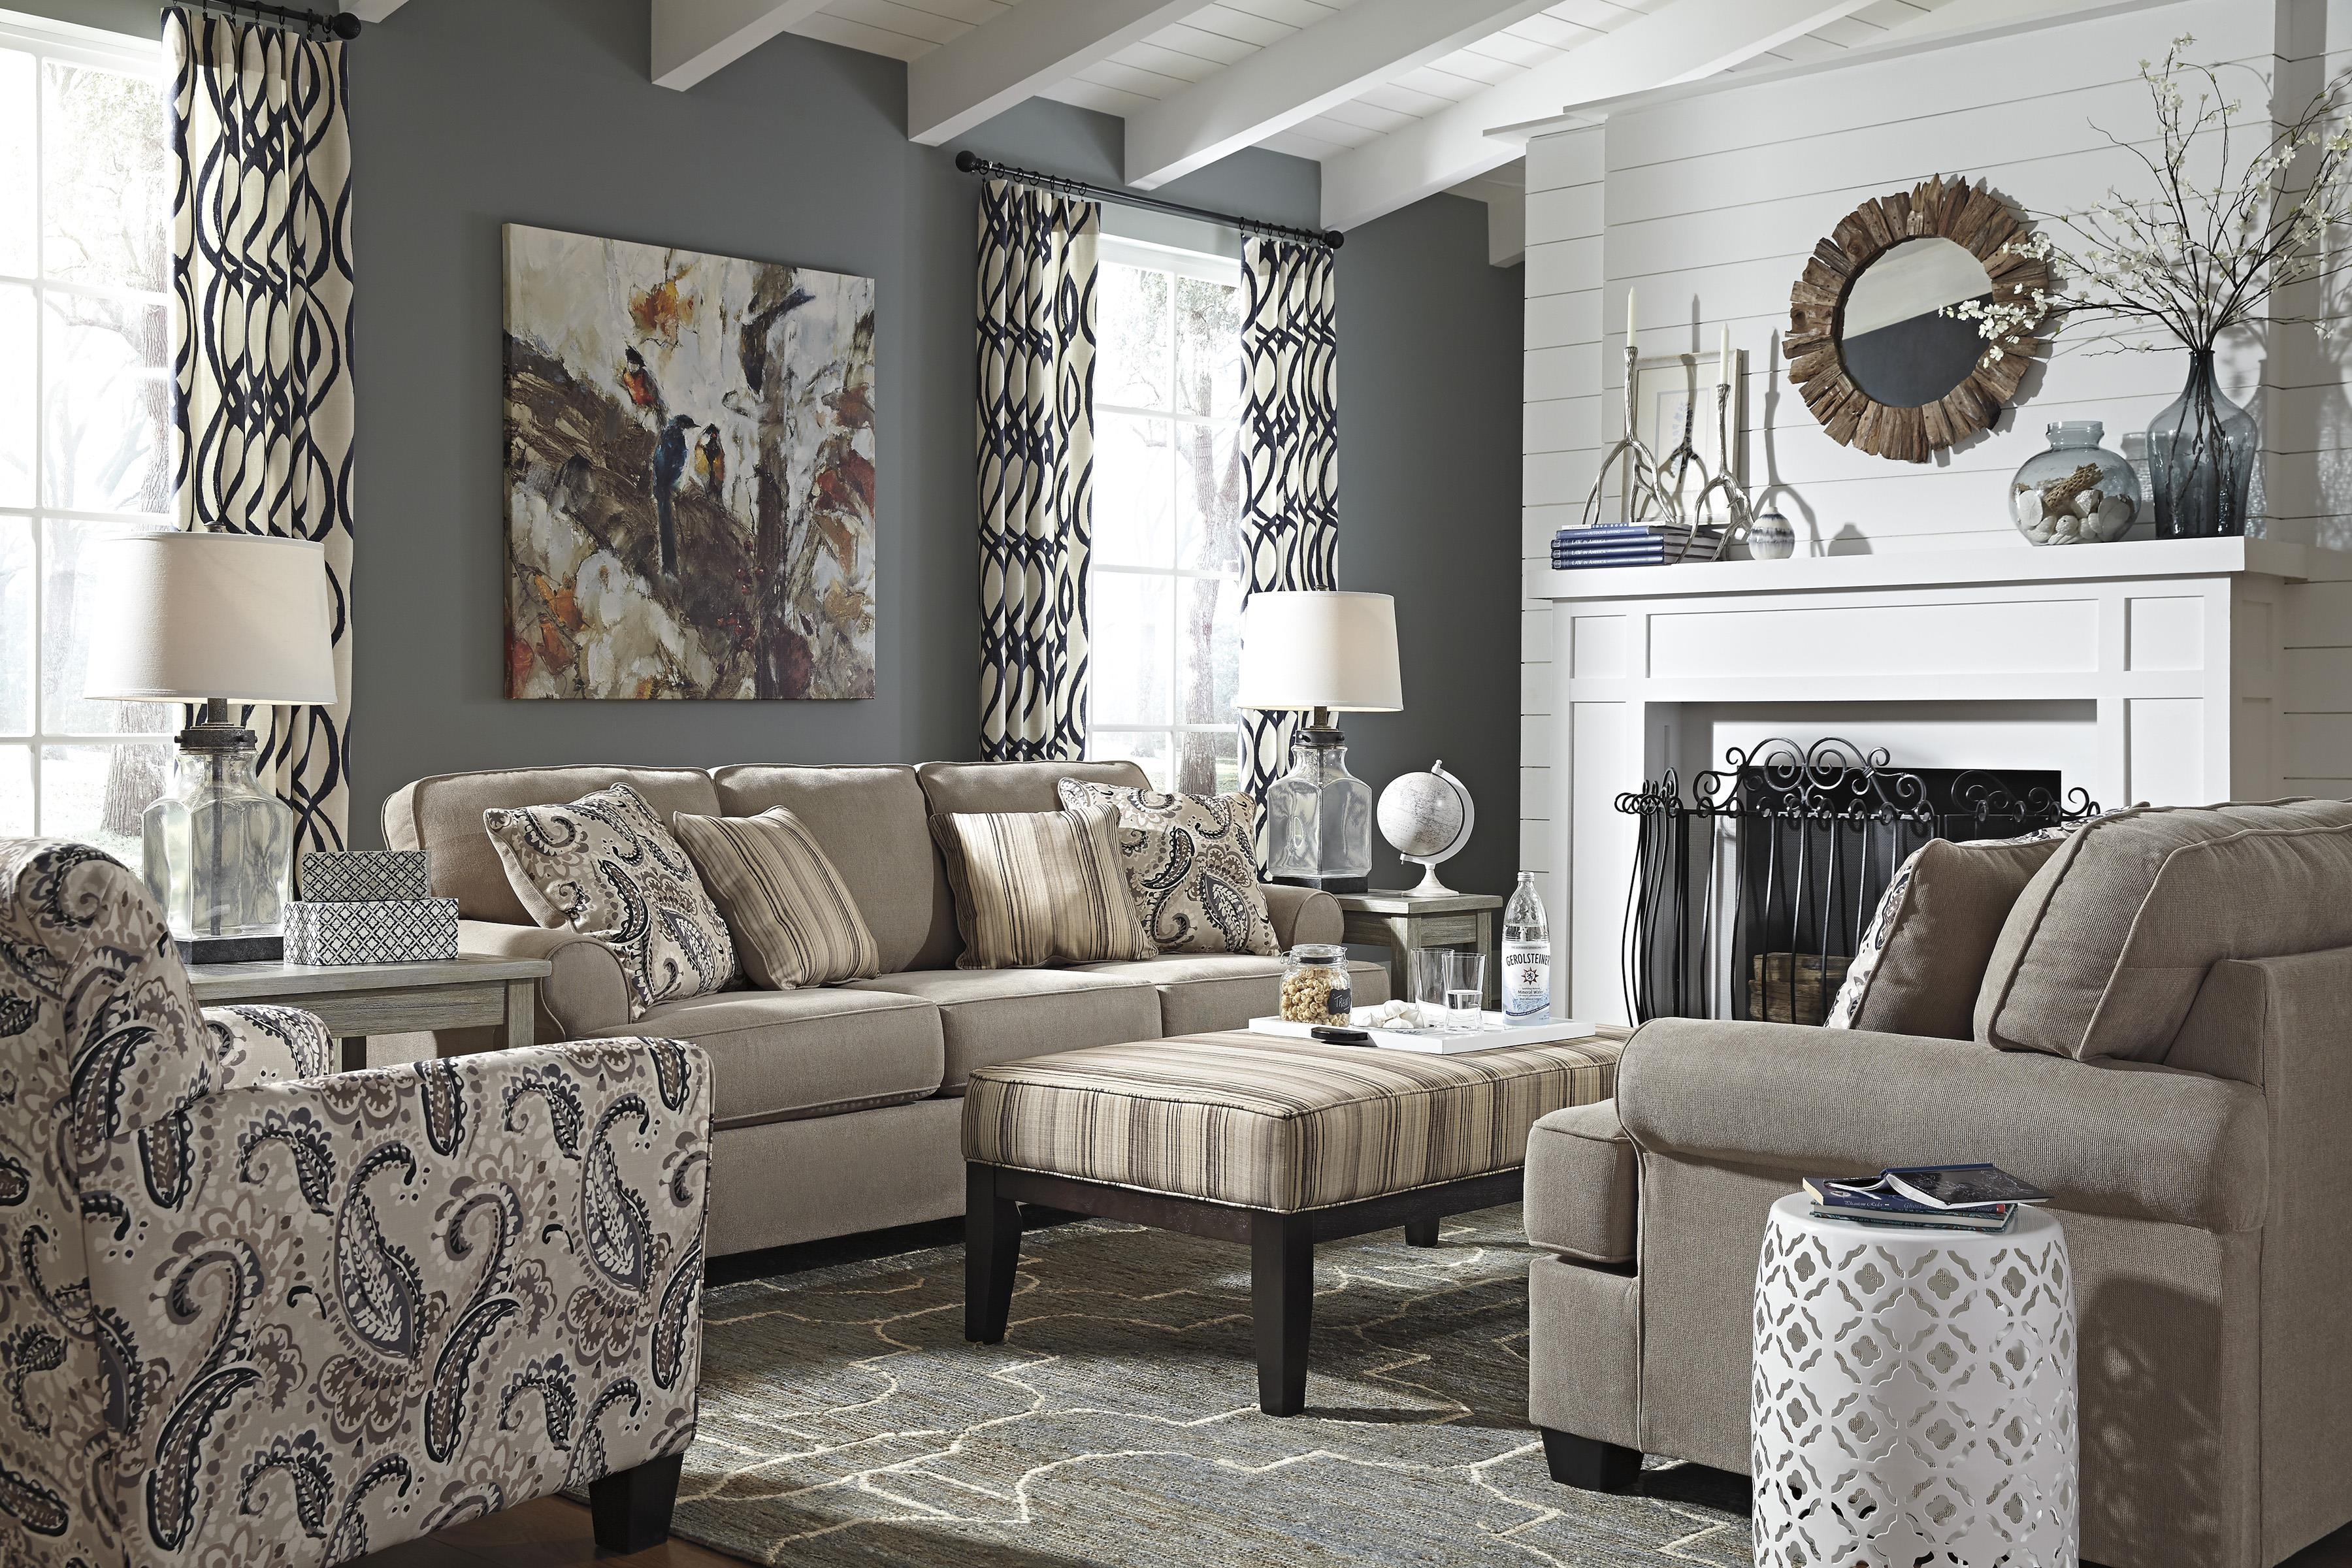 Signature Design by Ashley Melaya Stationary Living Room Group - Item Number: 47800 Living Room Group 3